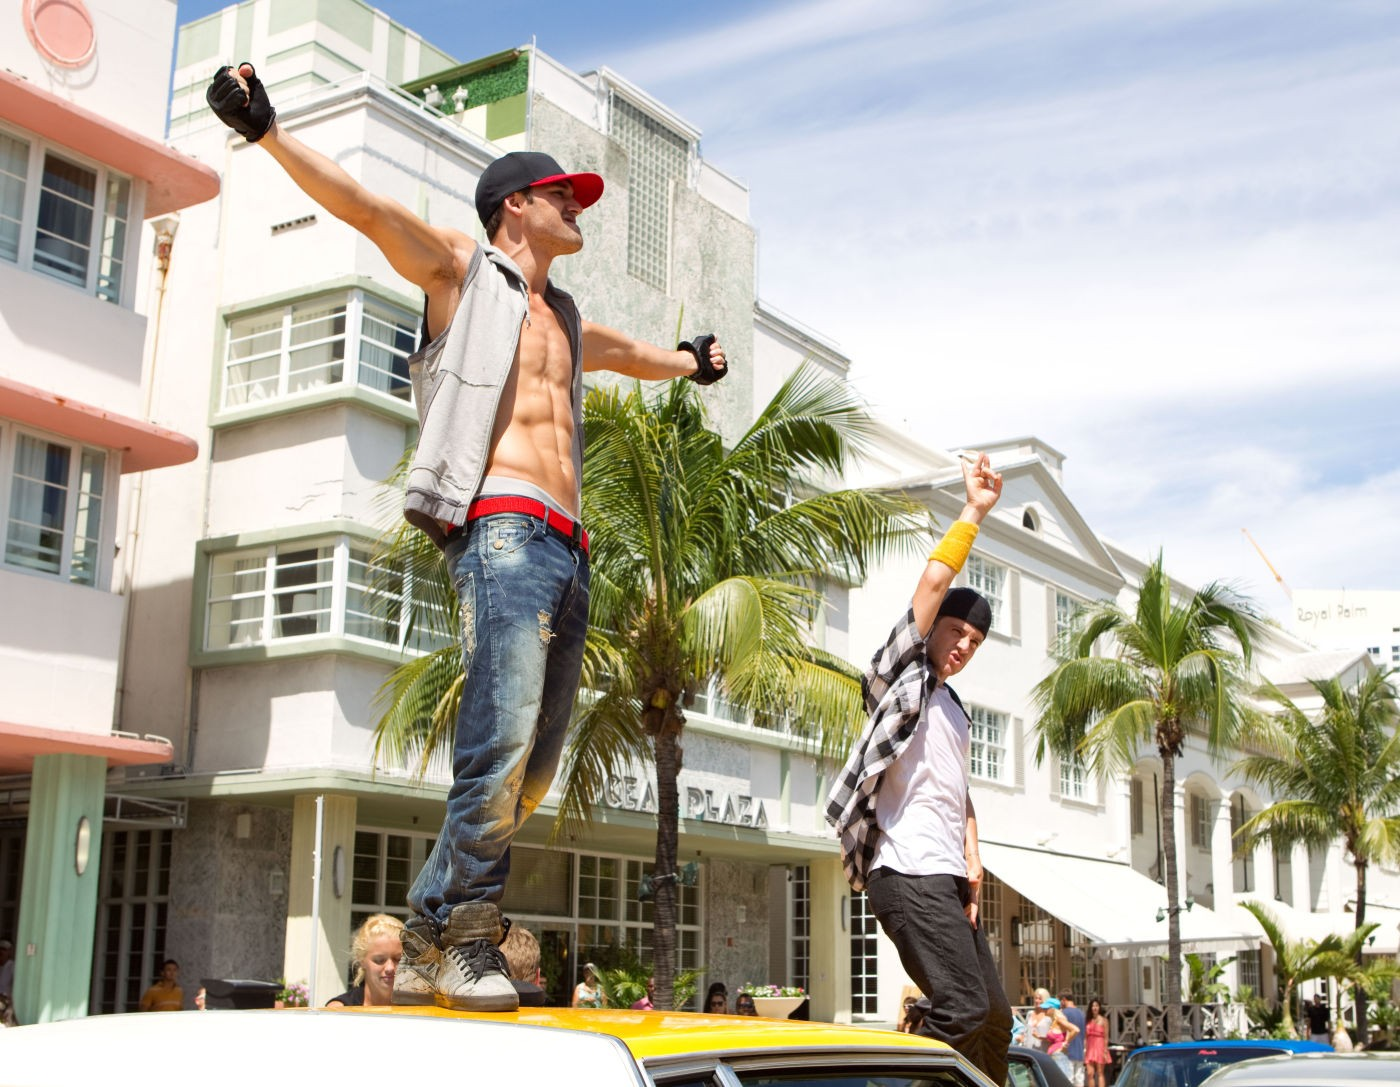 I AM CHIALYNN Step Up Revolution - A step up in amazing architecture la